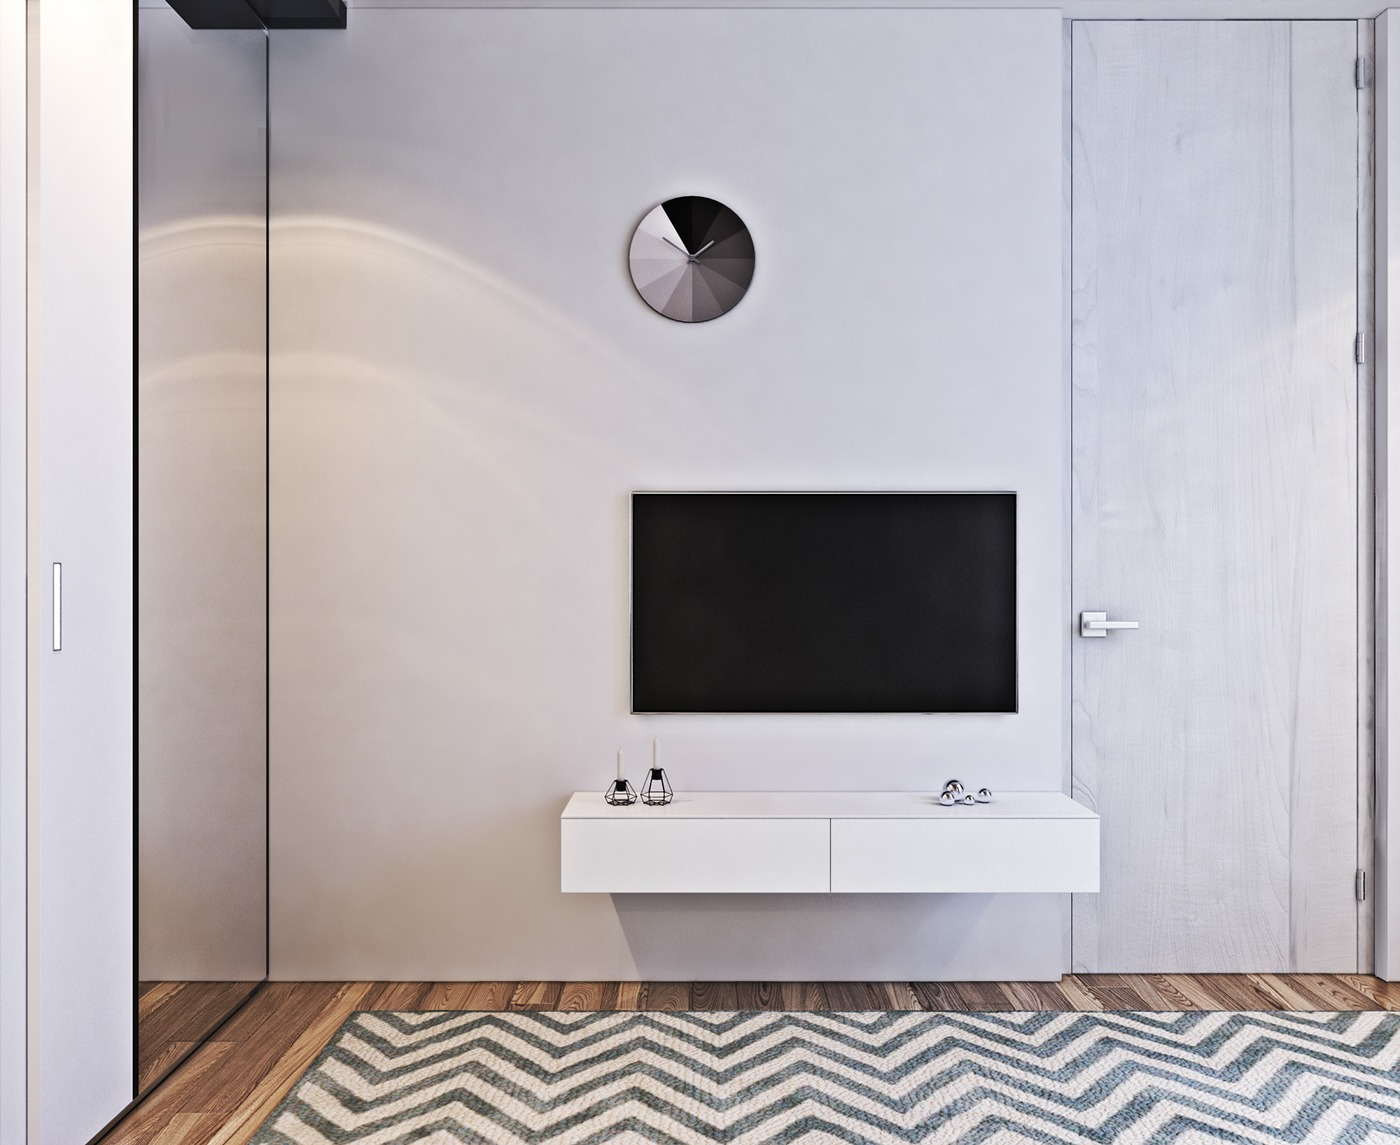 Gradient Clock - A contemporary apartment with lots of open space